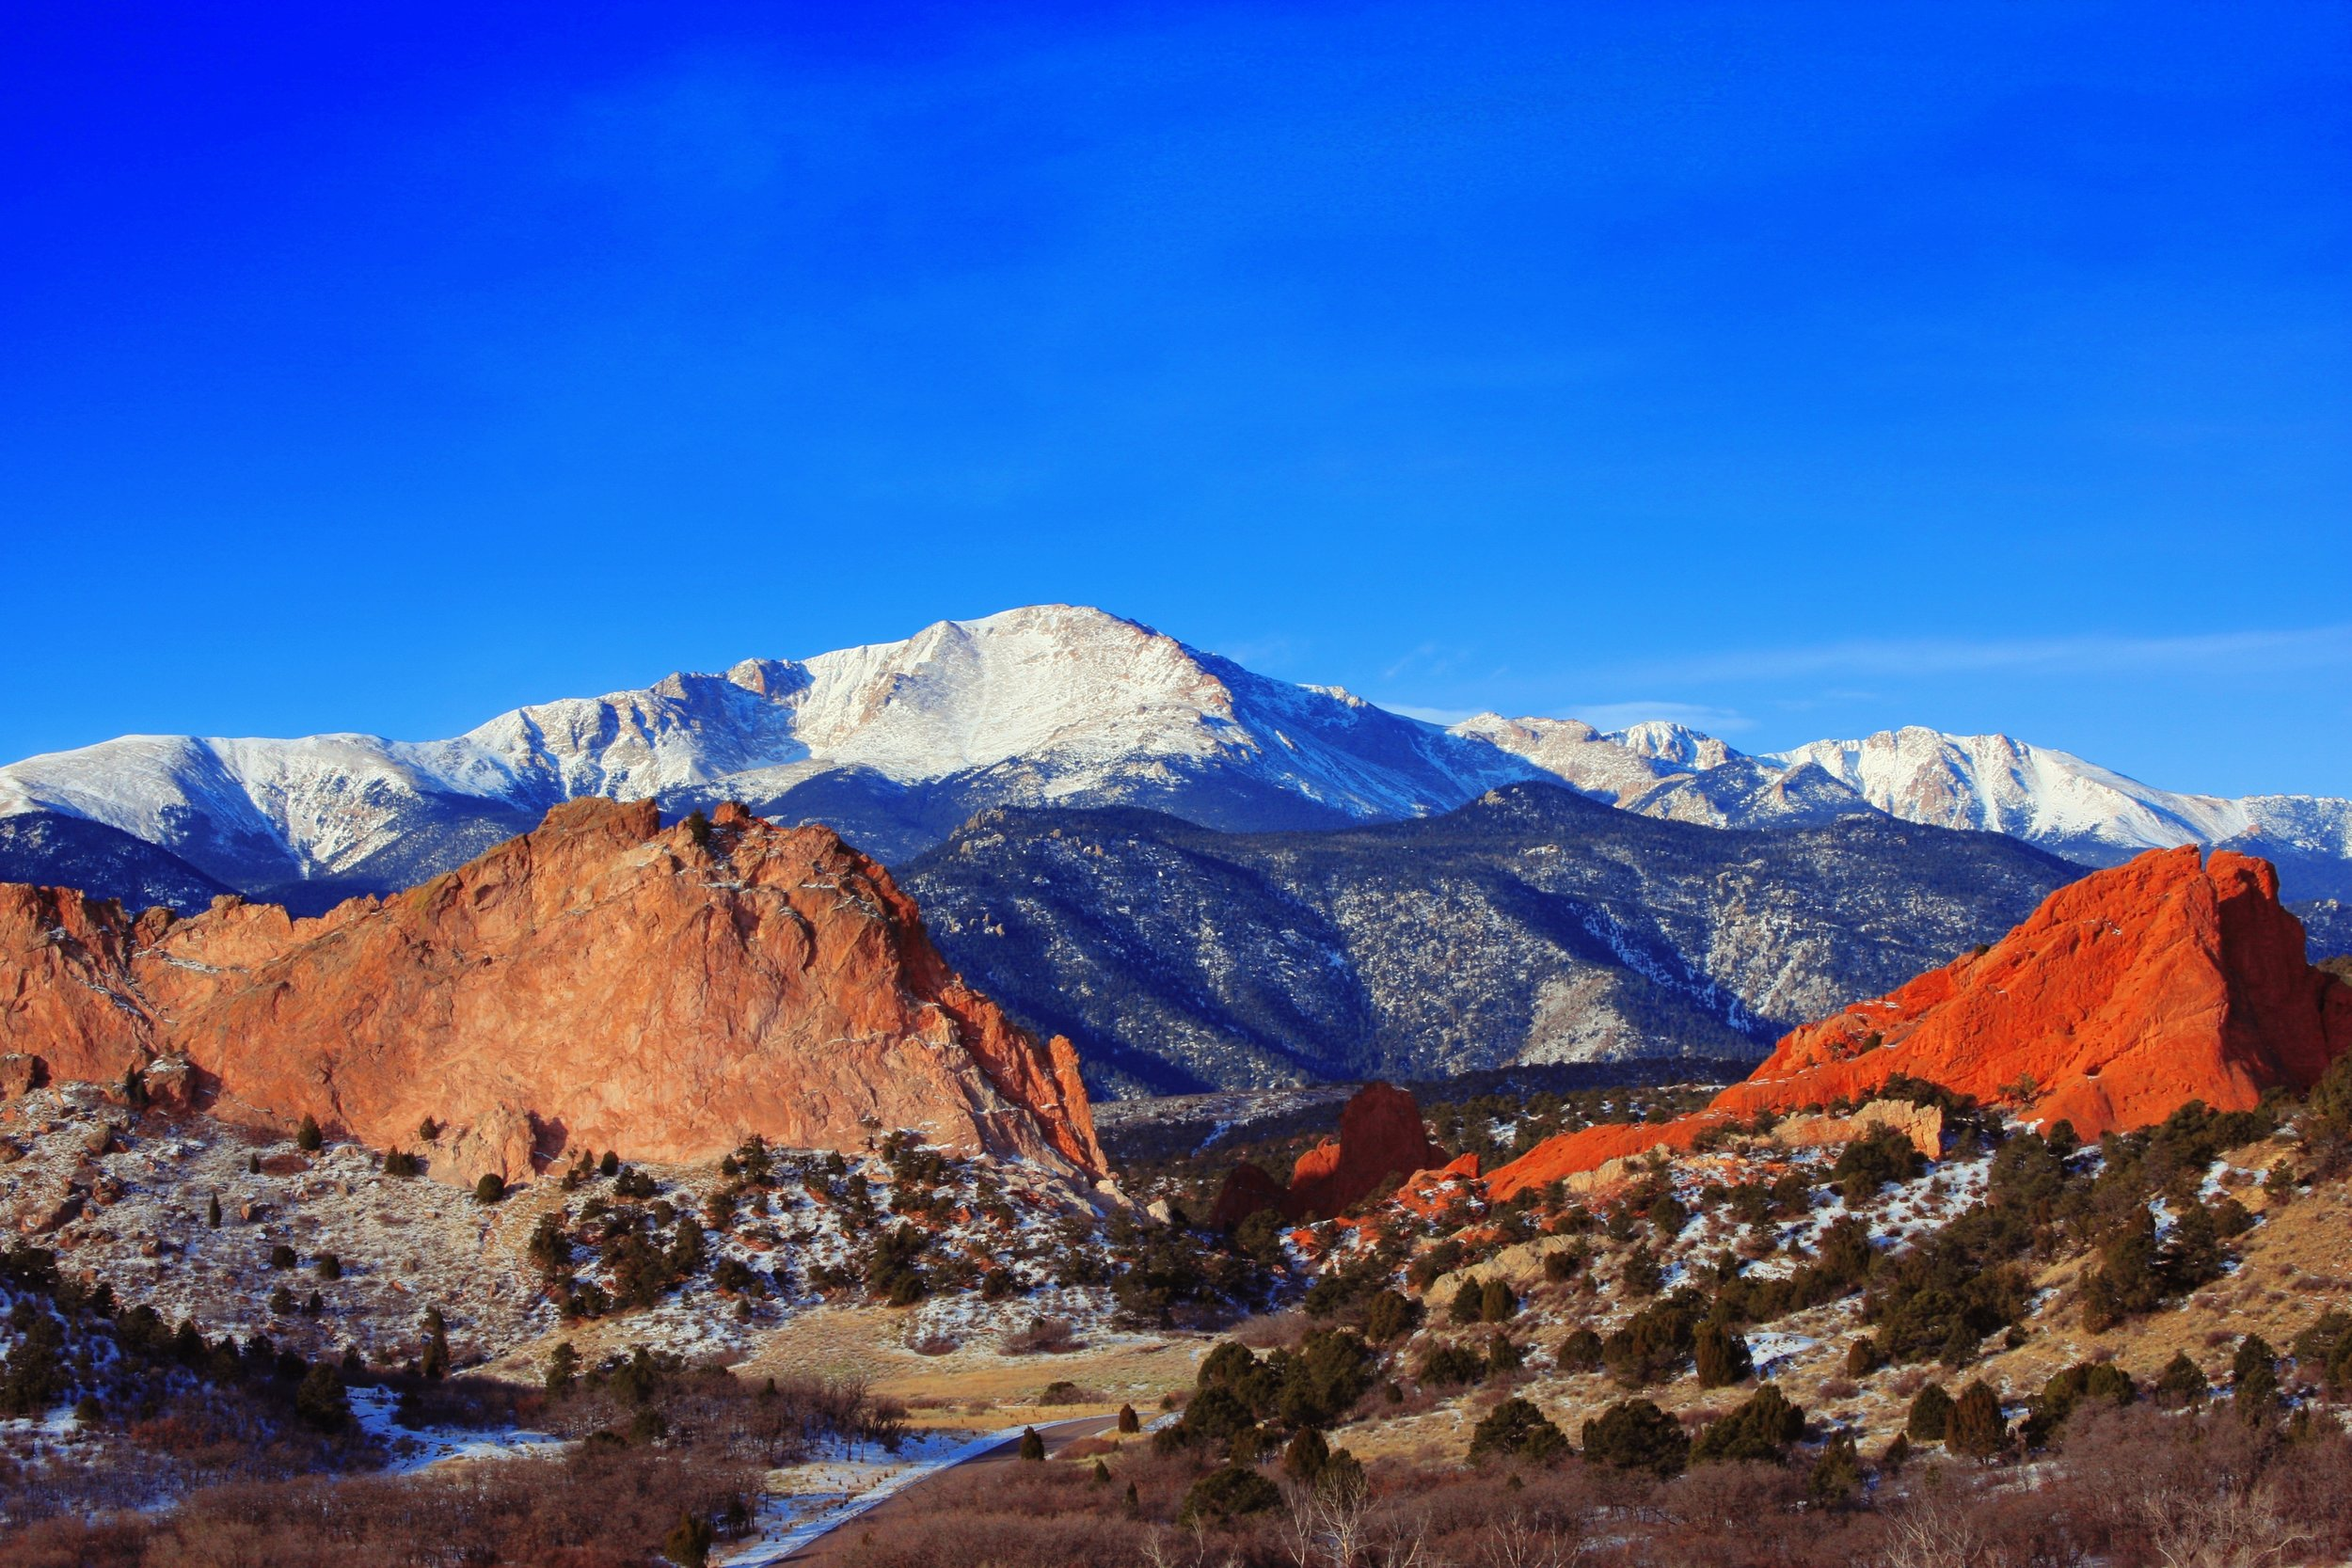 Landscape photo of Garden of the Gods and Pikes Peak lightly dusted with snow.